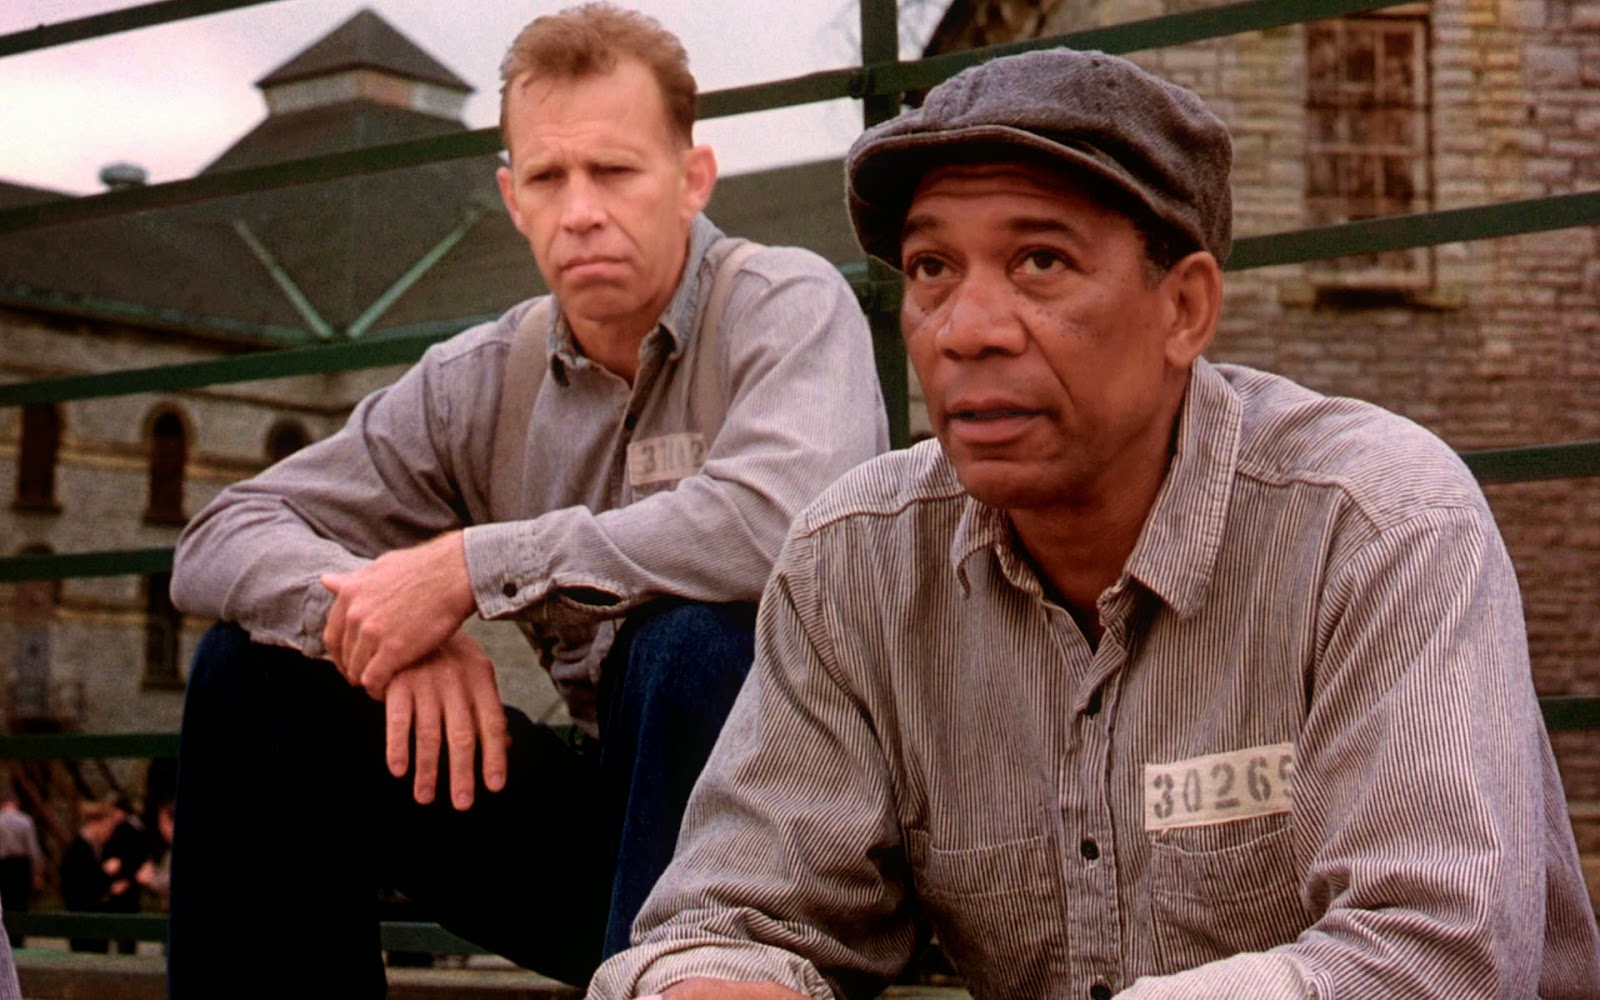 shawshank redemption movie questions If you have seen the shawshank redemption, i invite you to join me in breaking down and analyzing the movie there's redemption right there in the movie's title institutionalization as described by red and the effects of which are lived out in the free world by he and brooks.